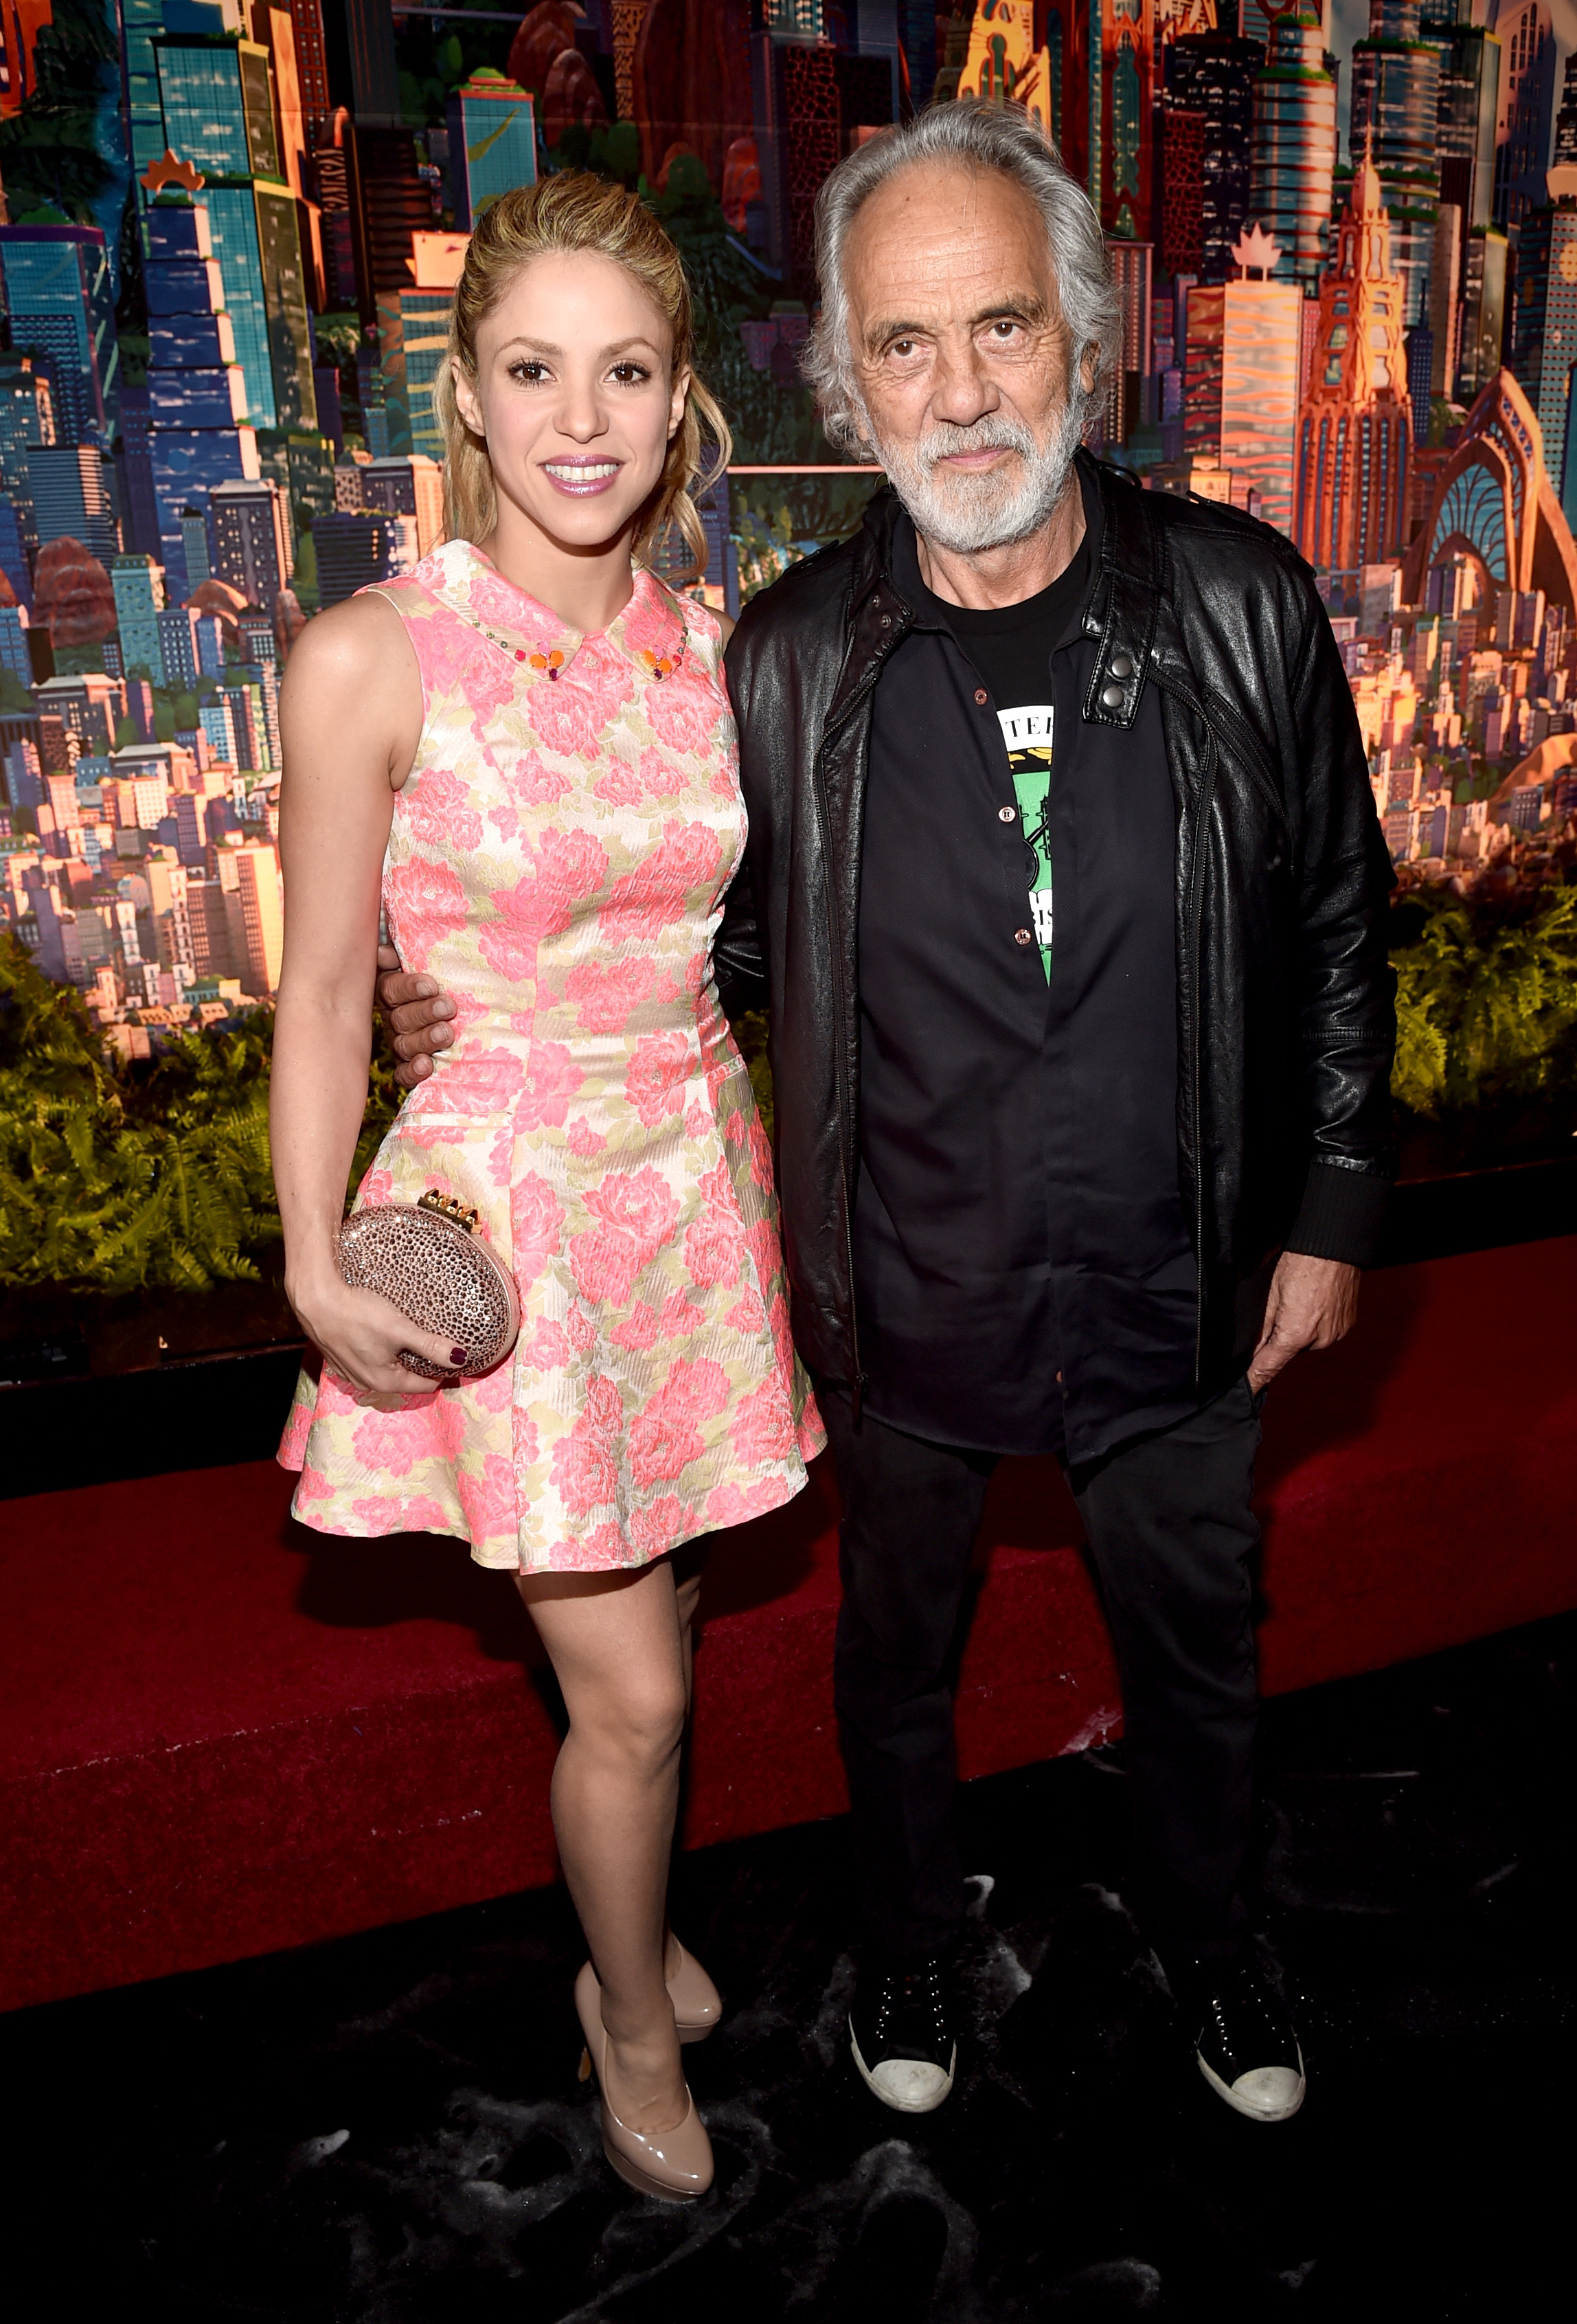 Singer Shakira (L) and actor Tommy Chong attend the Los Angeles premiere of Walt Disney Animation Studios' 'Zootopia' (Photo by Alberto E. Rodriguez/Getty Images for Disney)